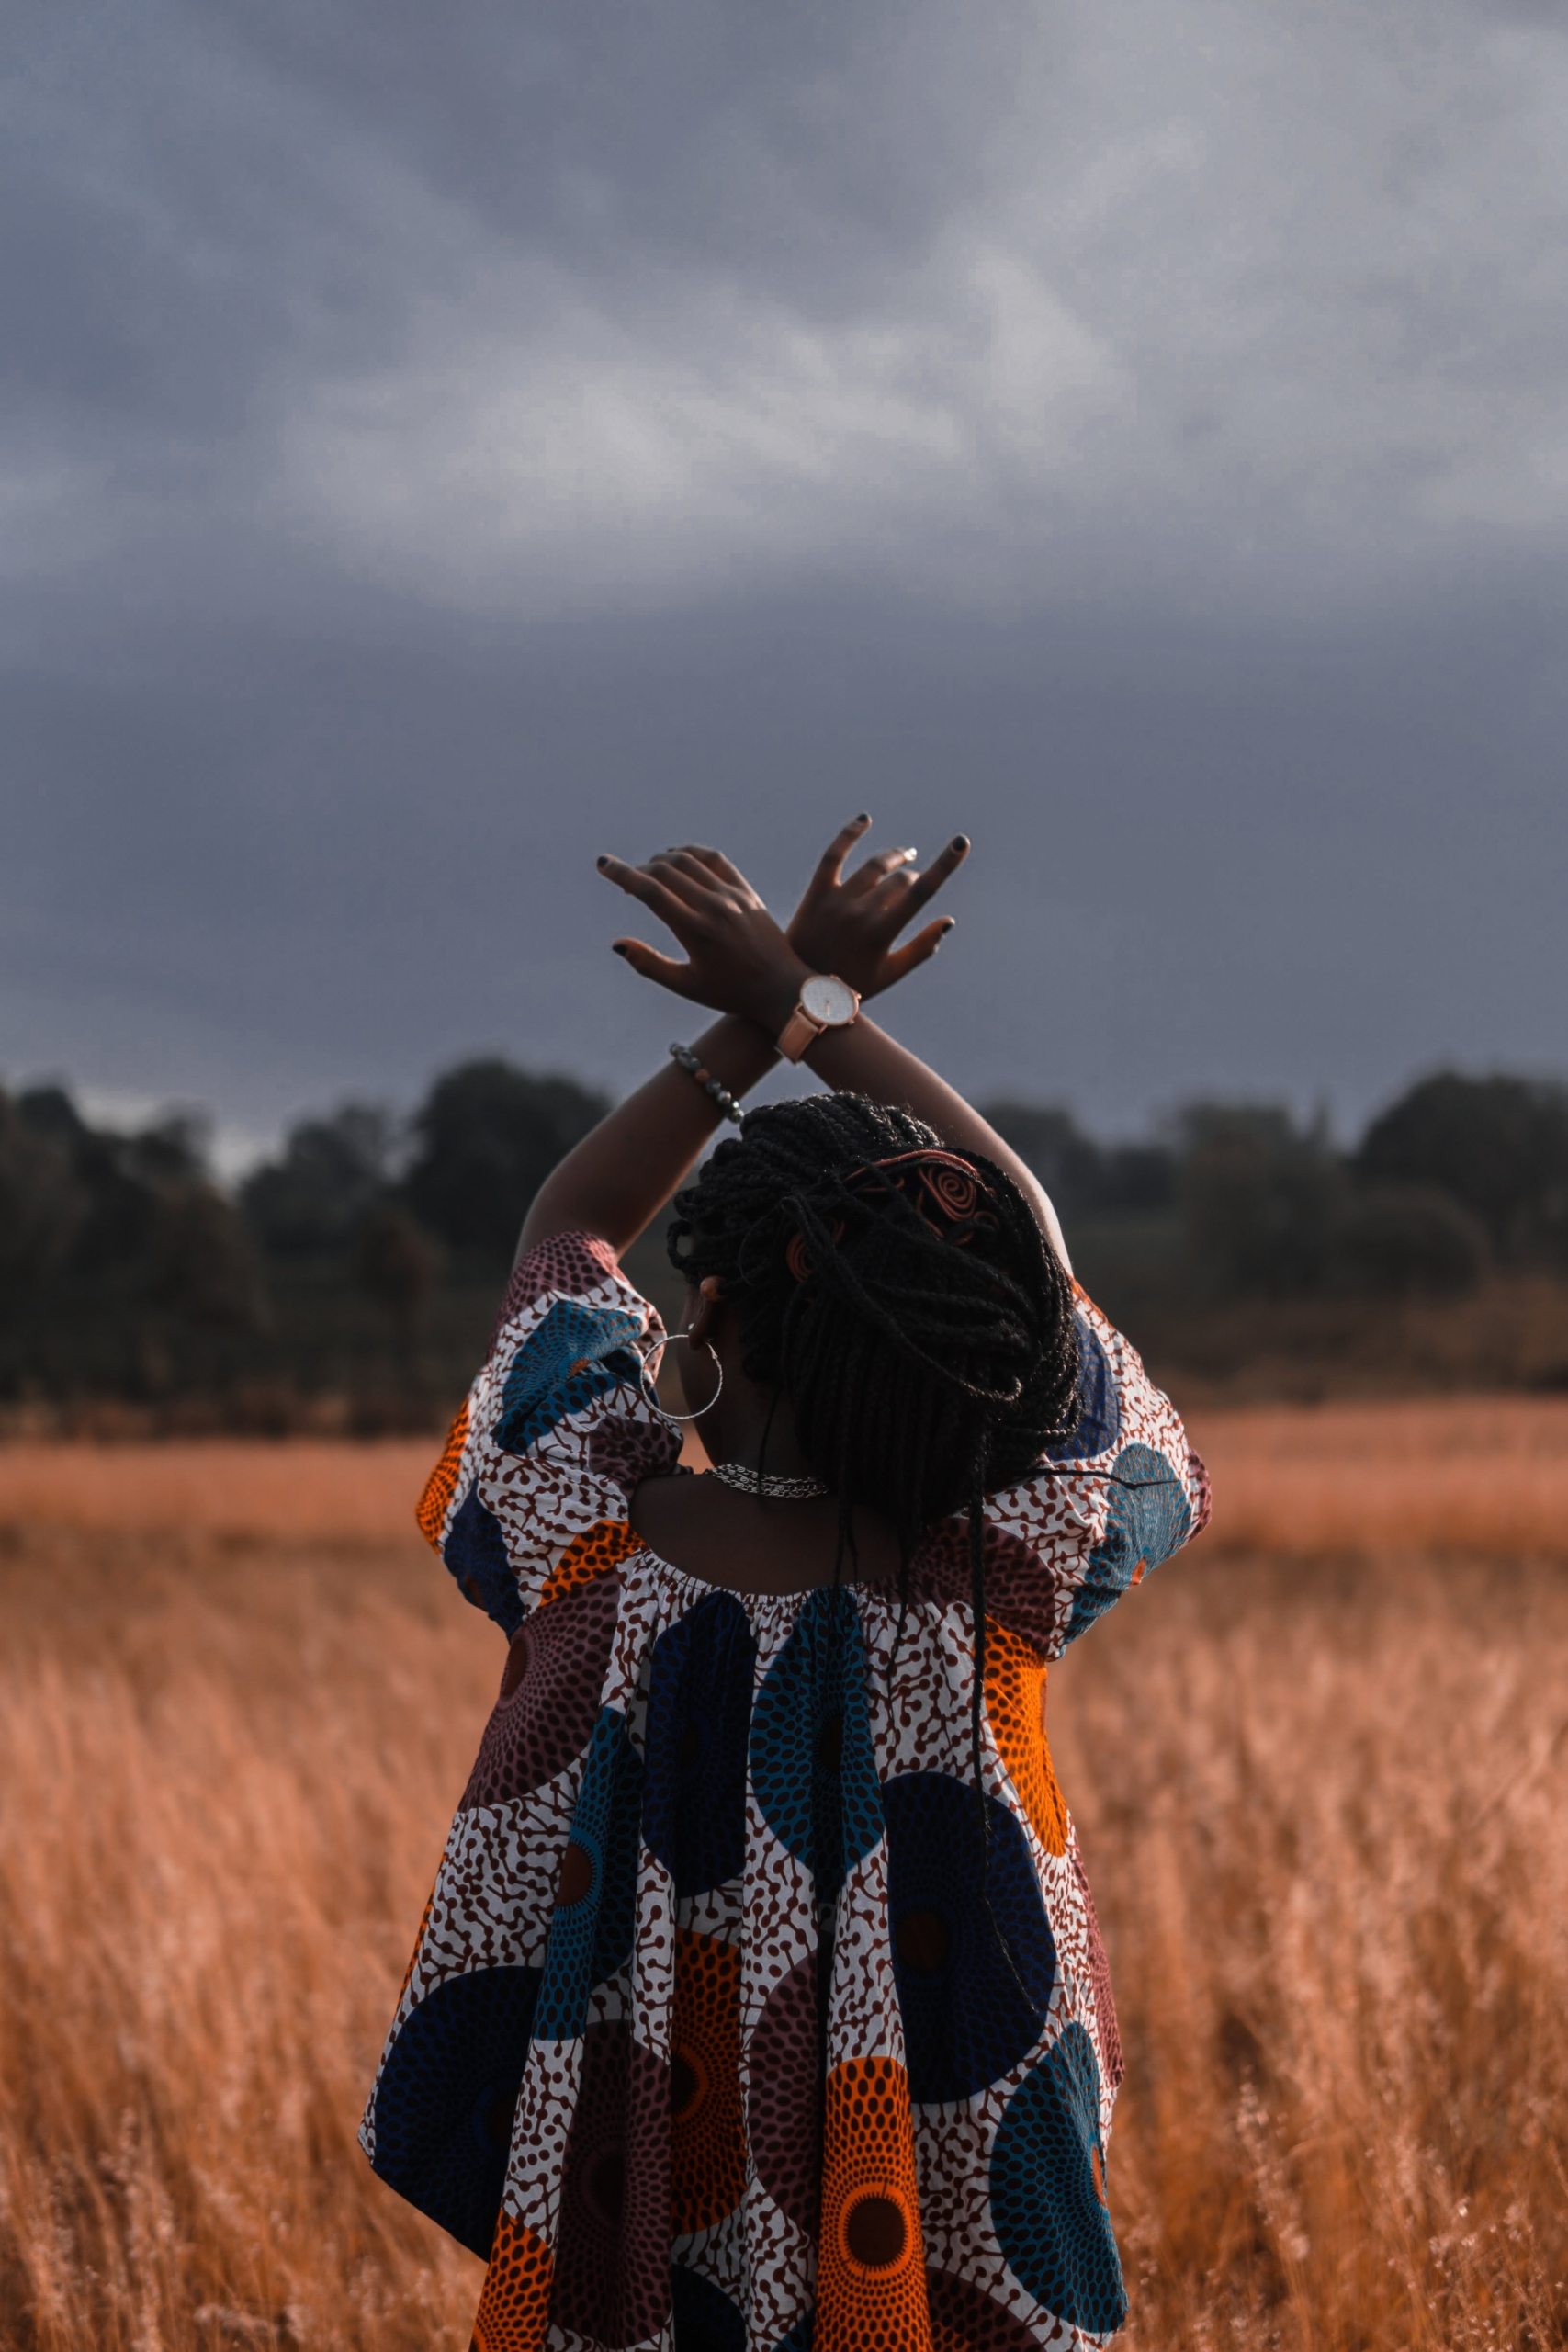 Woman in a field with hands raised